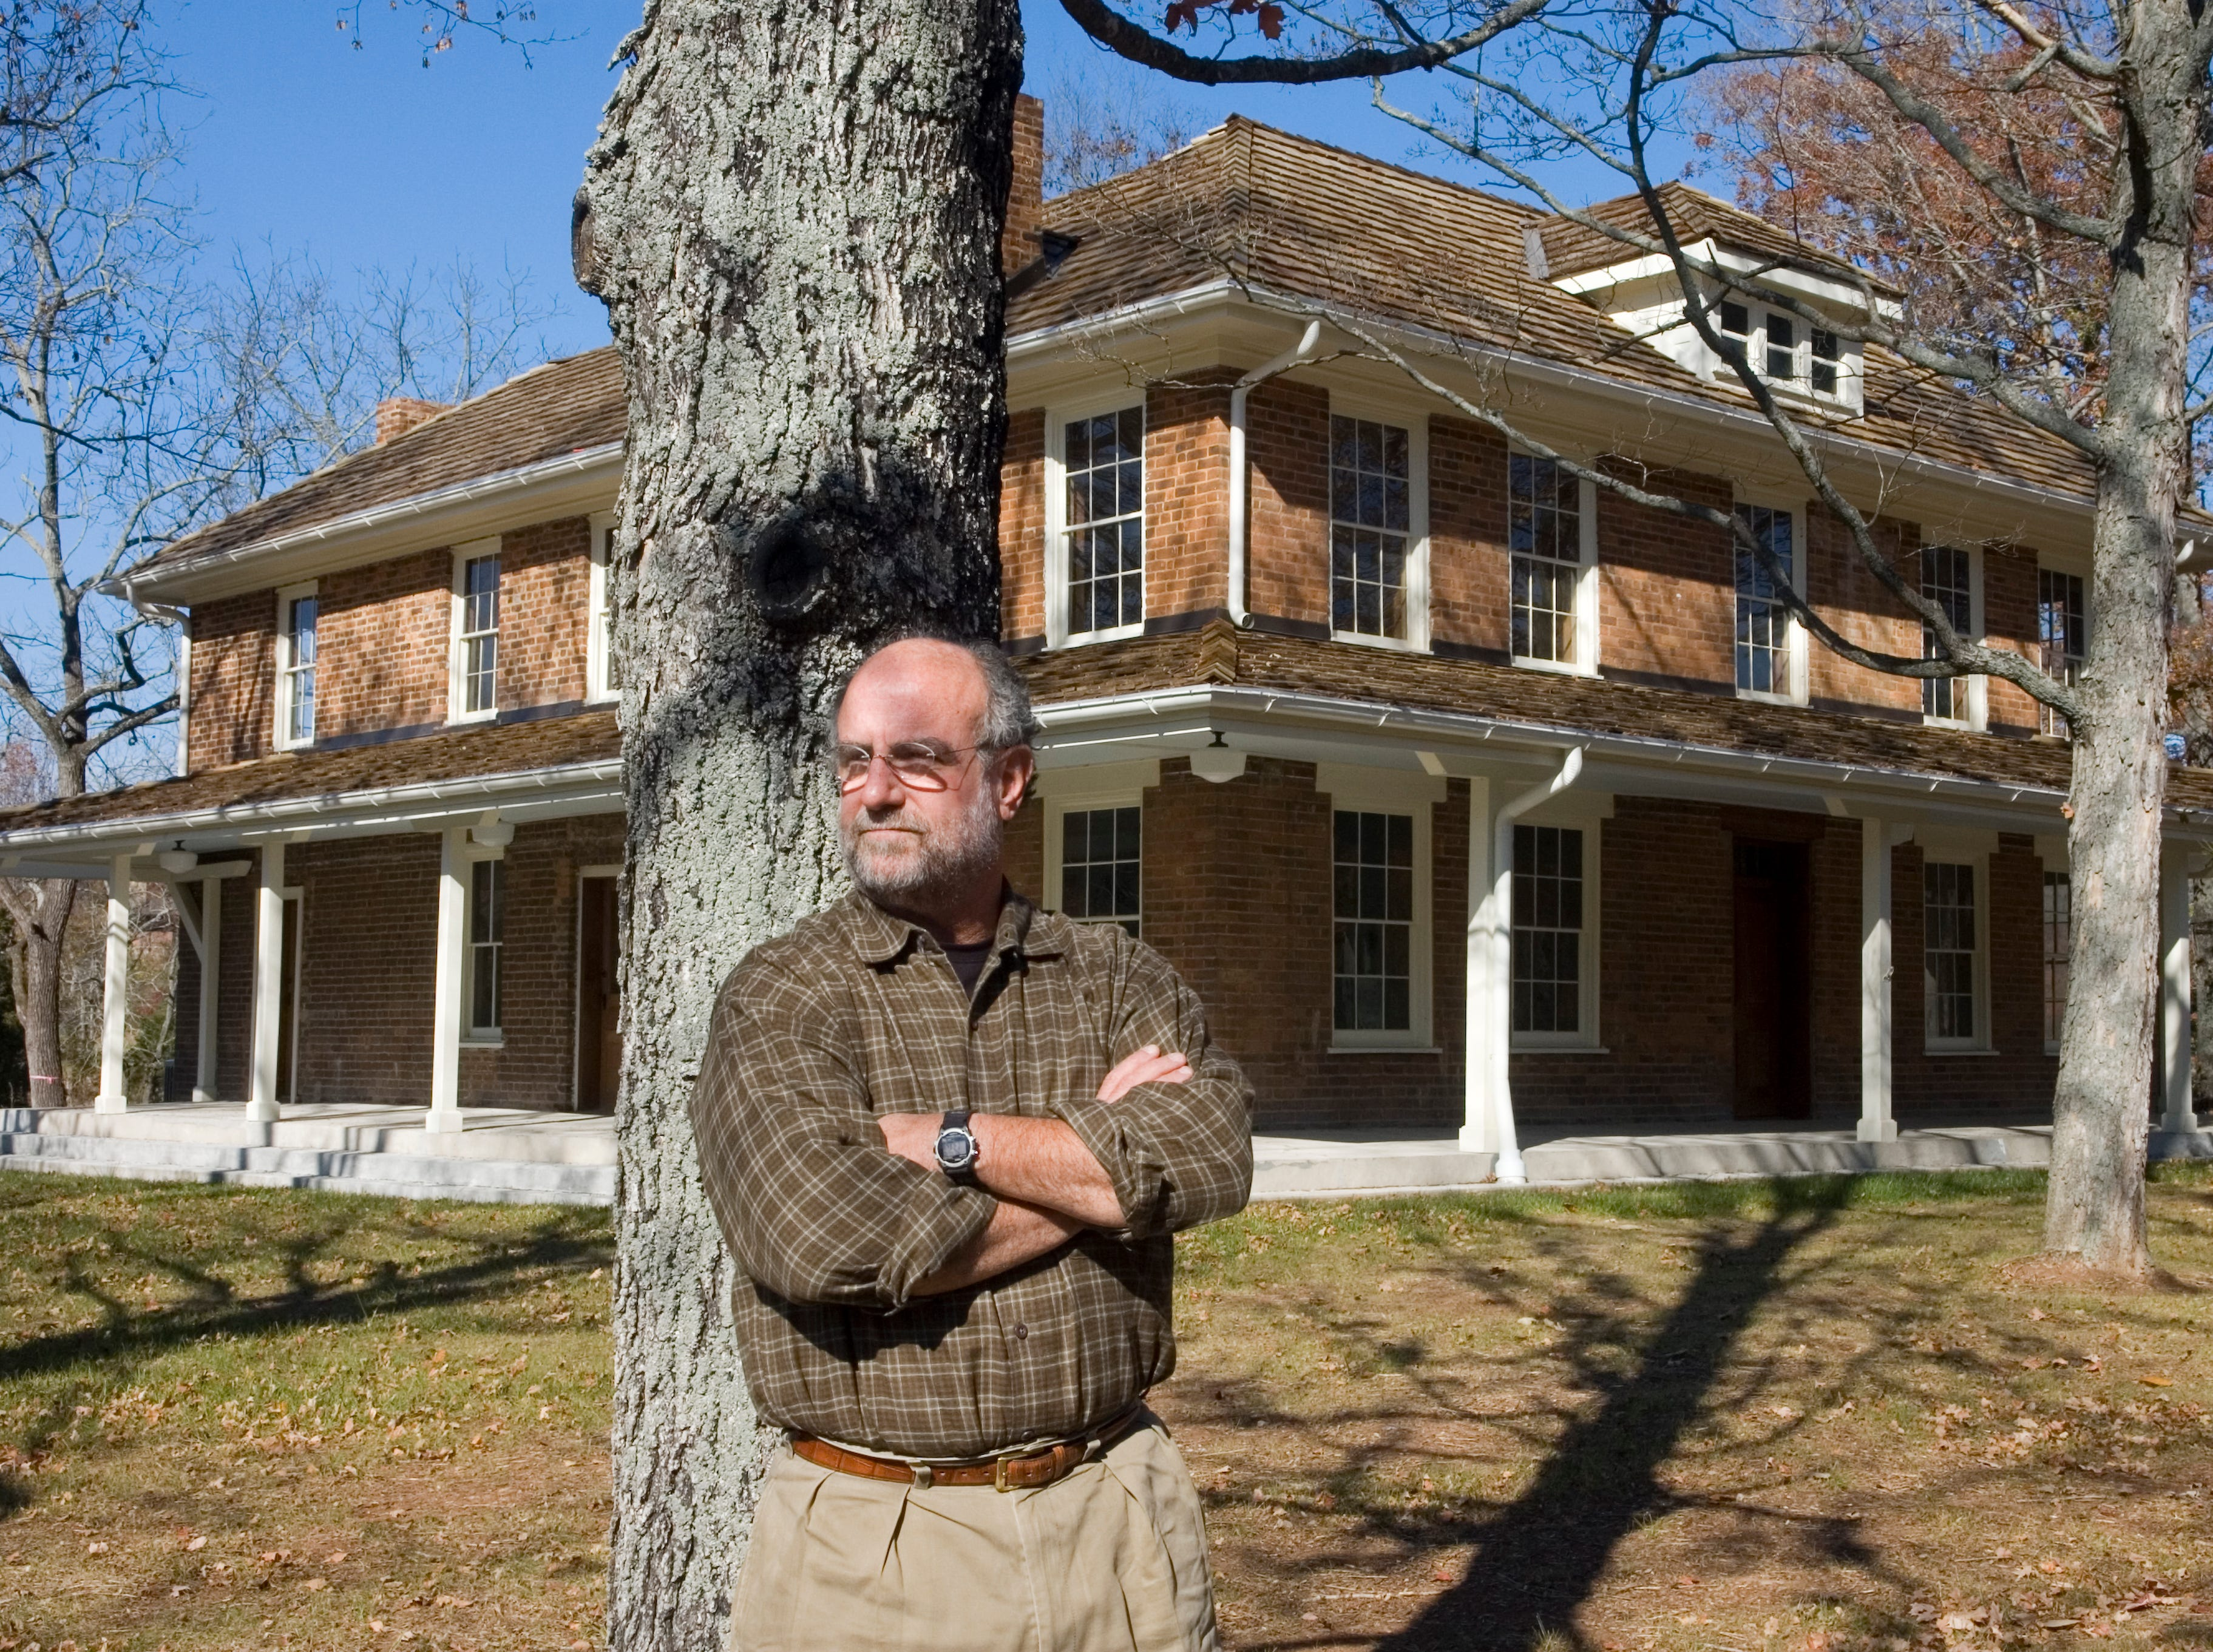 """Tom Weiss pauses in front of the Lones-Dowell house, 6341 Middlebrook Pike, on Monday, November 10, 2008. Weiss was honored as one of the """"Fantastic Fifteen"""" at the Knox heritage Annual Meeting and Preservation Awards November 5, 2008."""